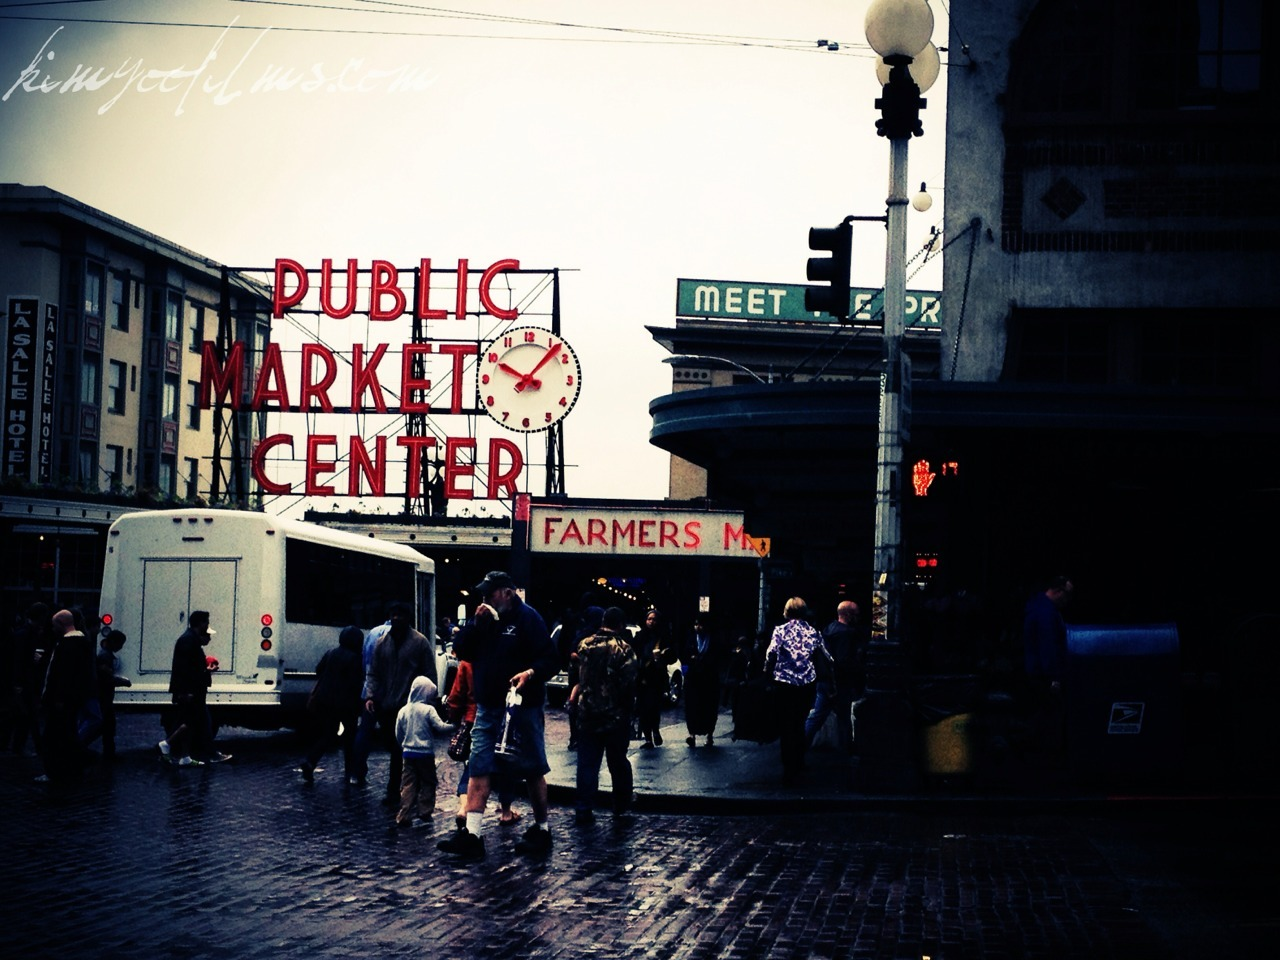 Went to Pike Place for breakfast before hopping on the train to head home.